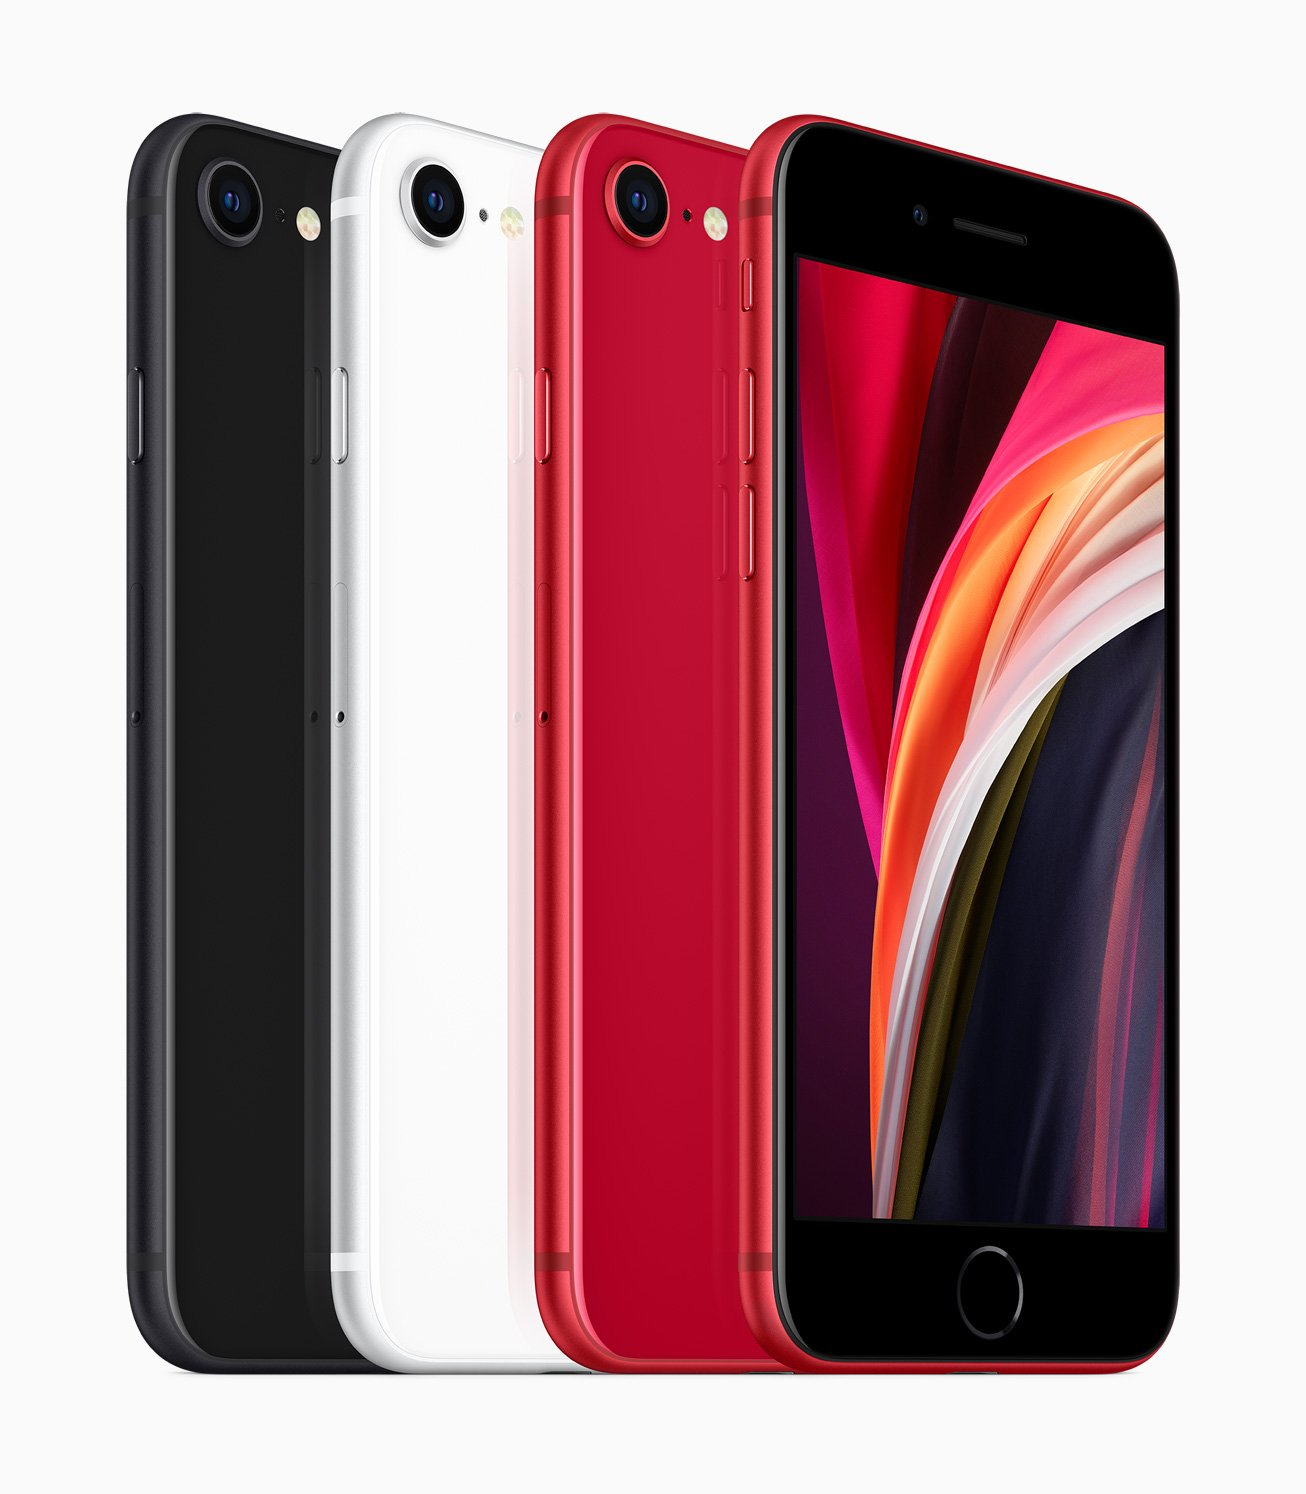 Apple_new-iphone-se-black-white-product-red-colors_04152020_inline.jpg.large_2x.jpg